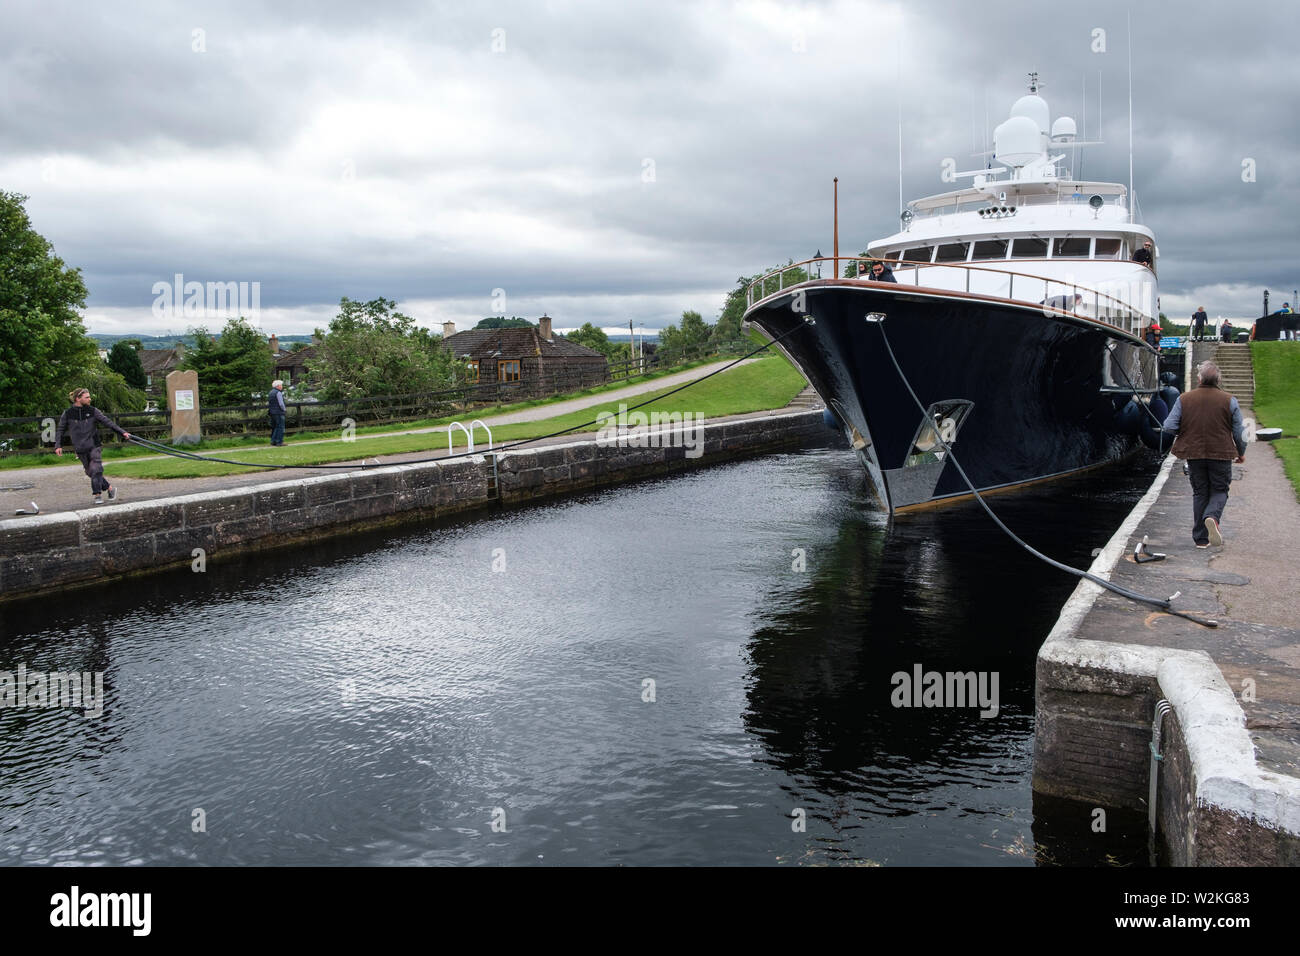 'Lady Rose' passing through Muirtown Locks, Caledonian Canal, Inverness - Stock Image